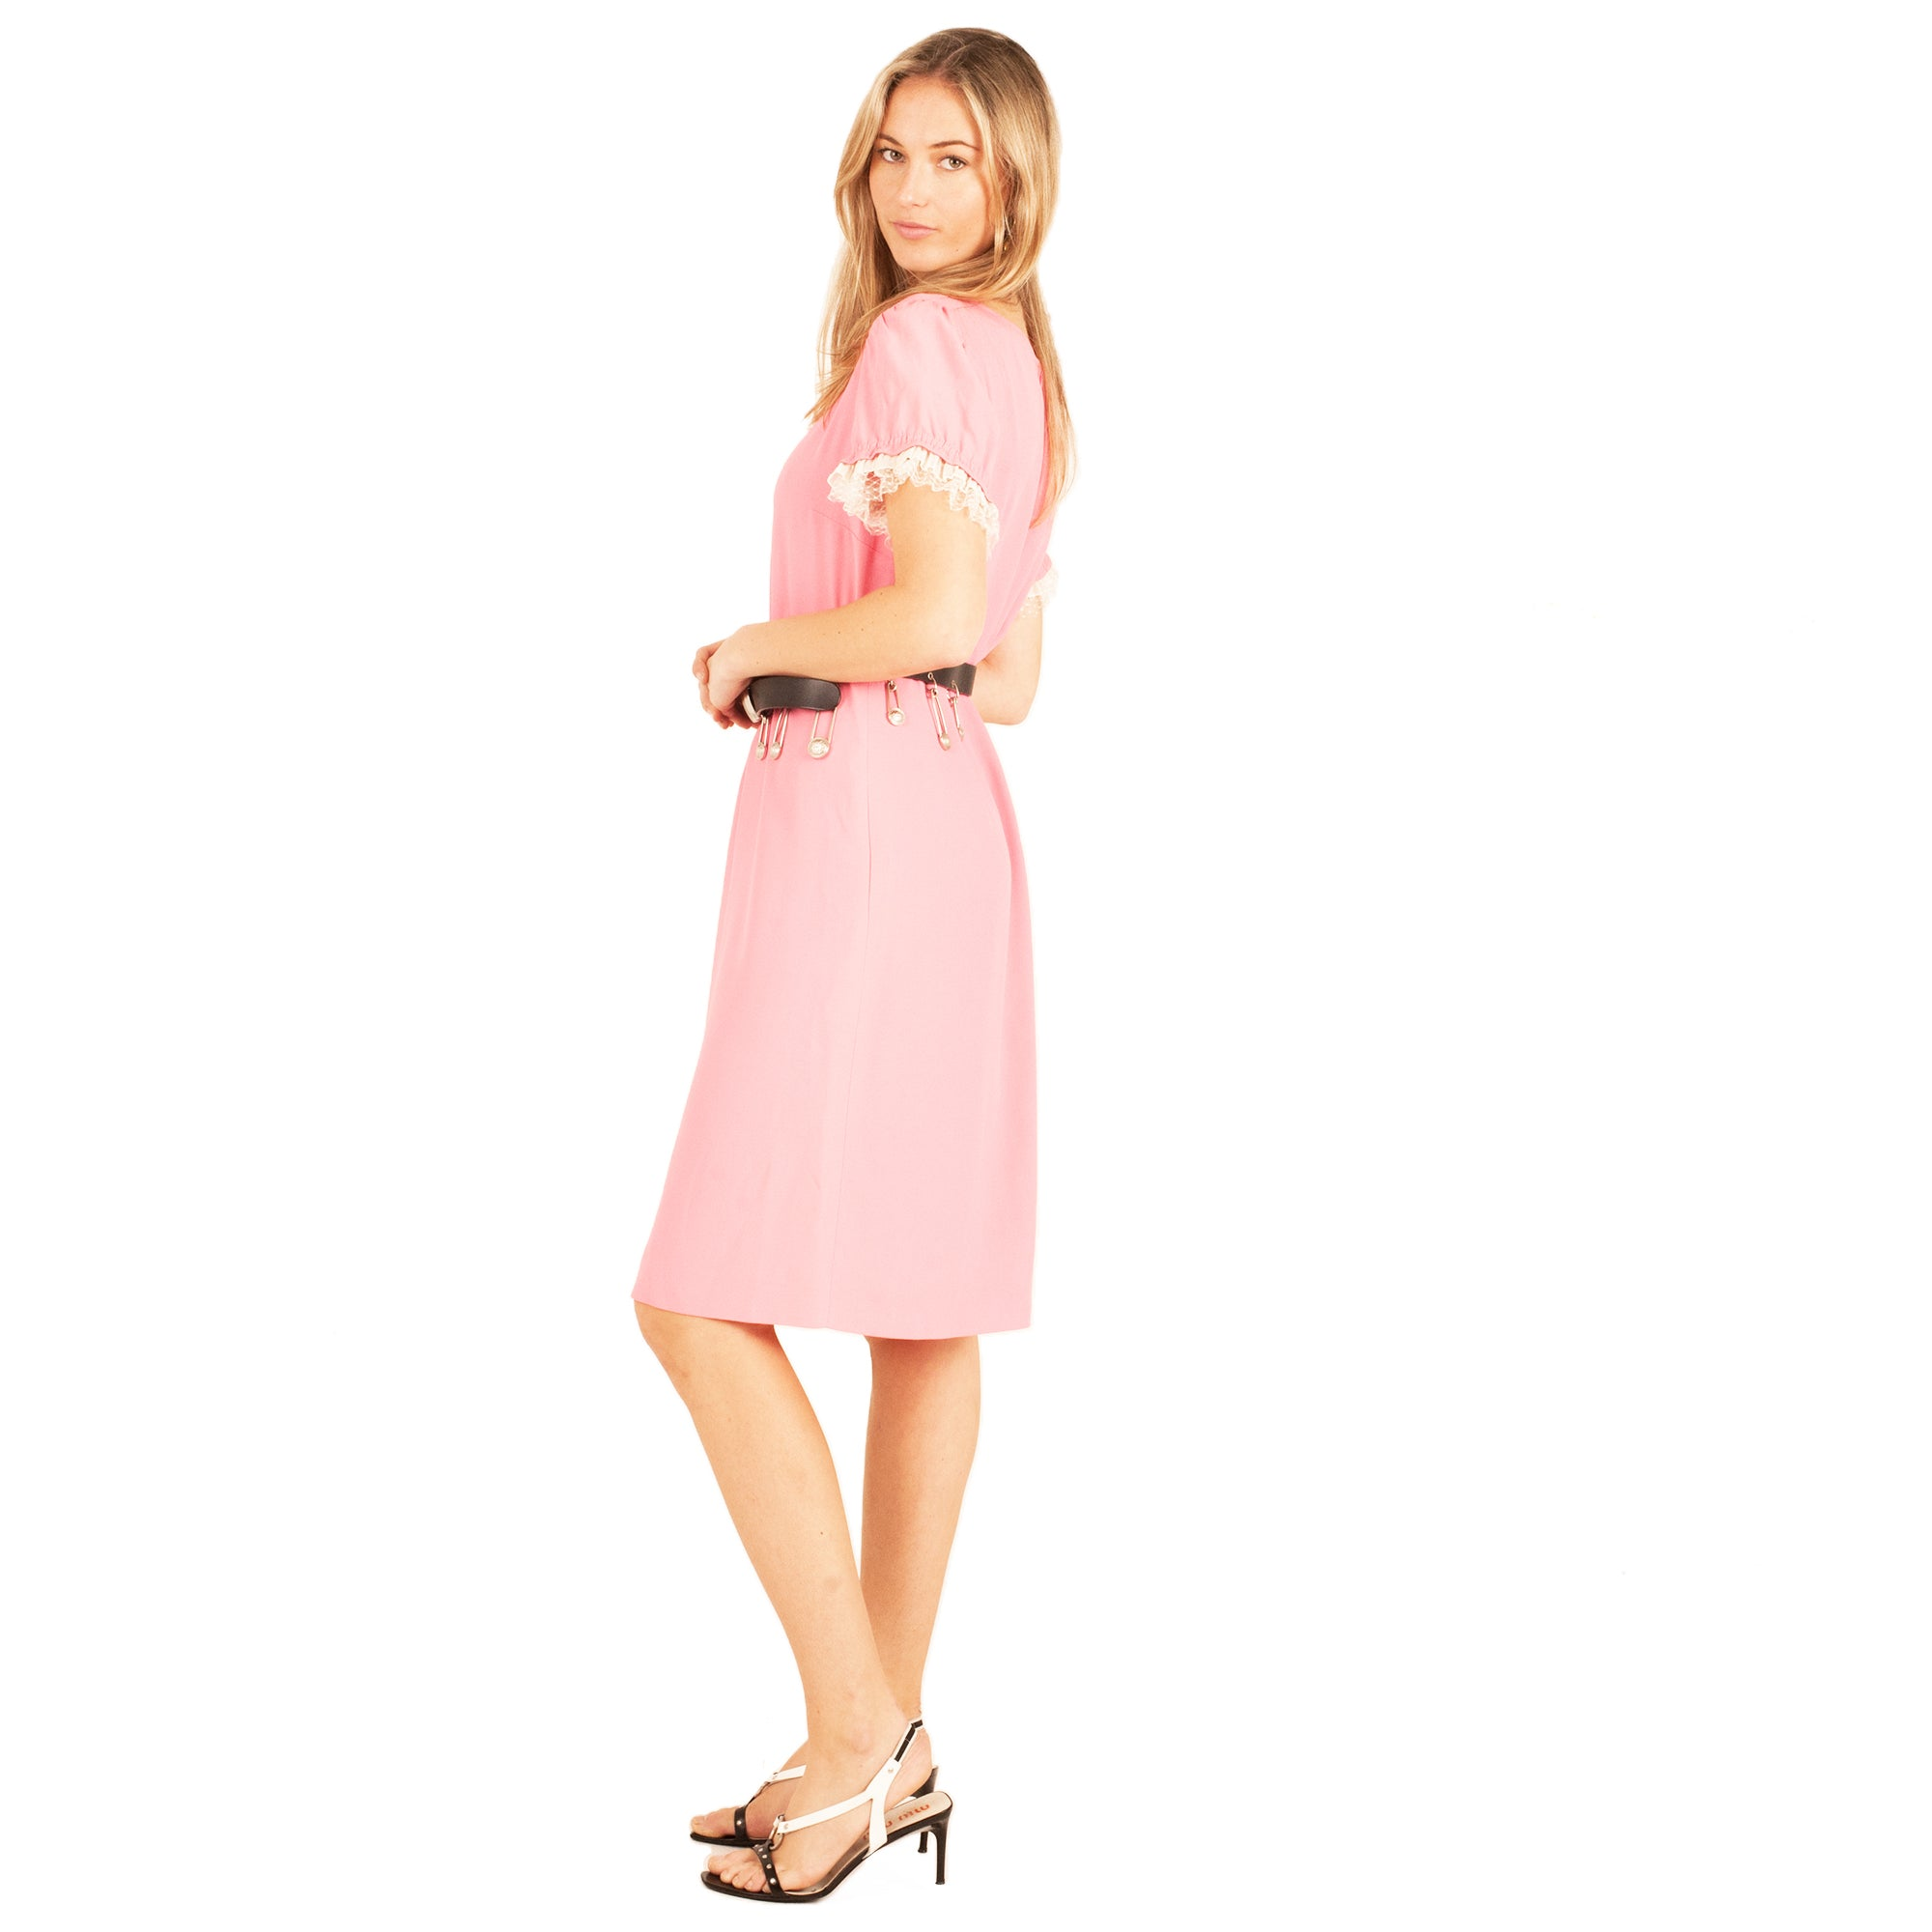 Valentino Dress (Pink) UK 8-10